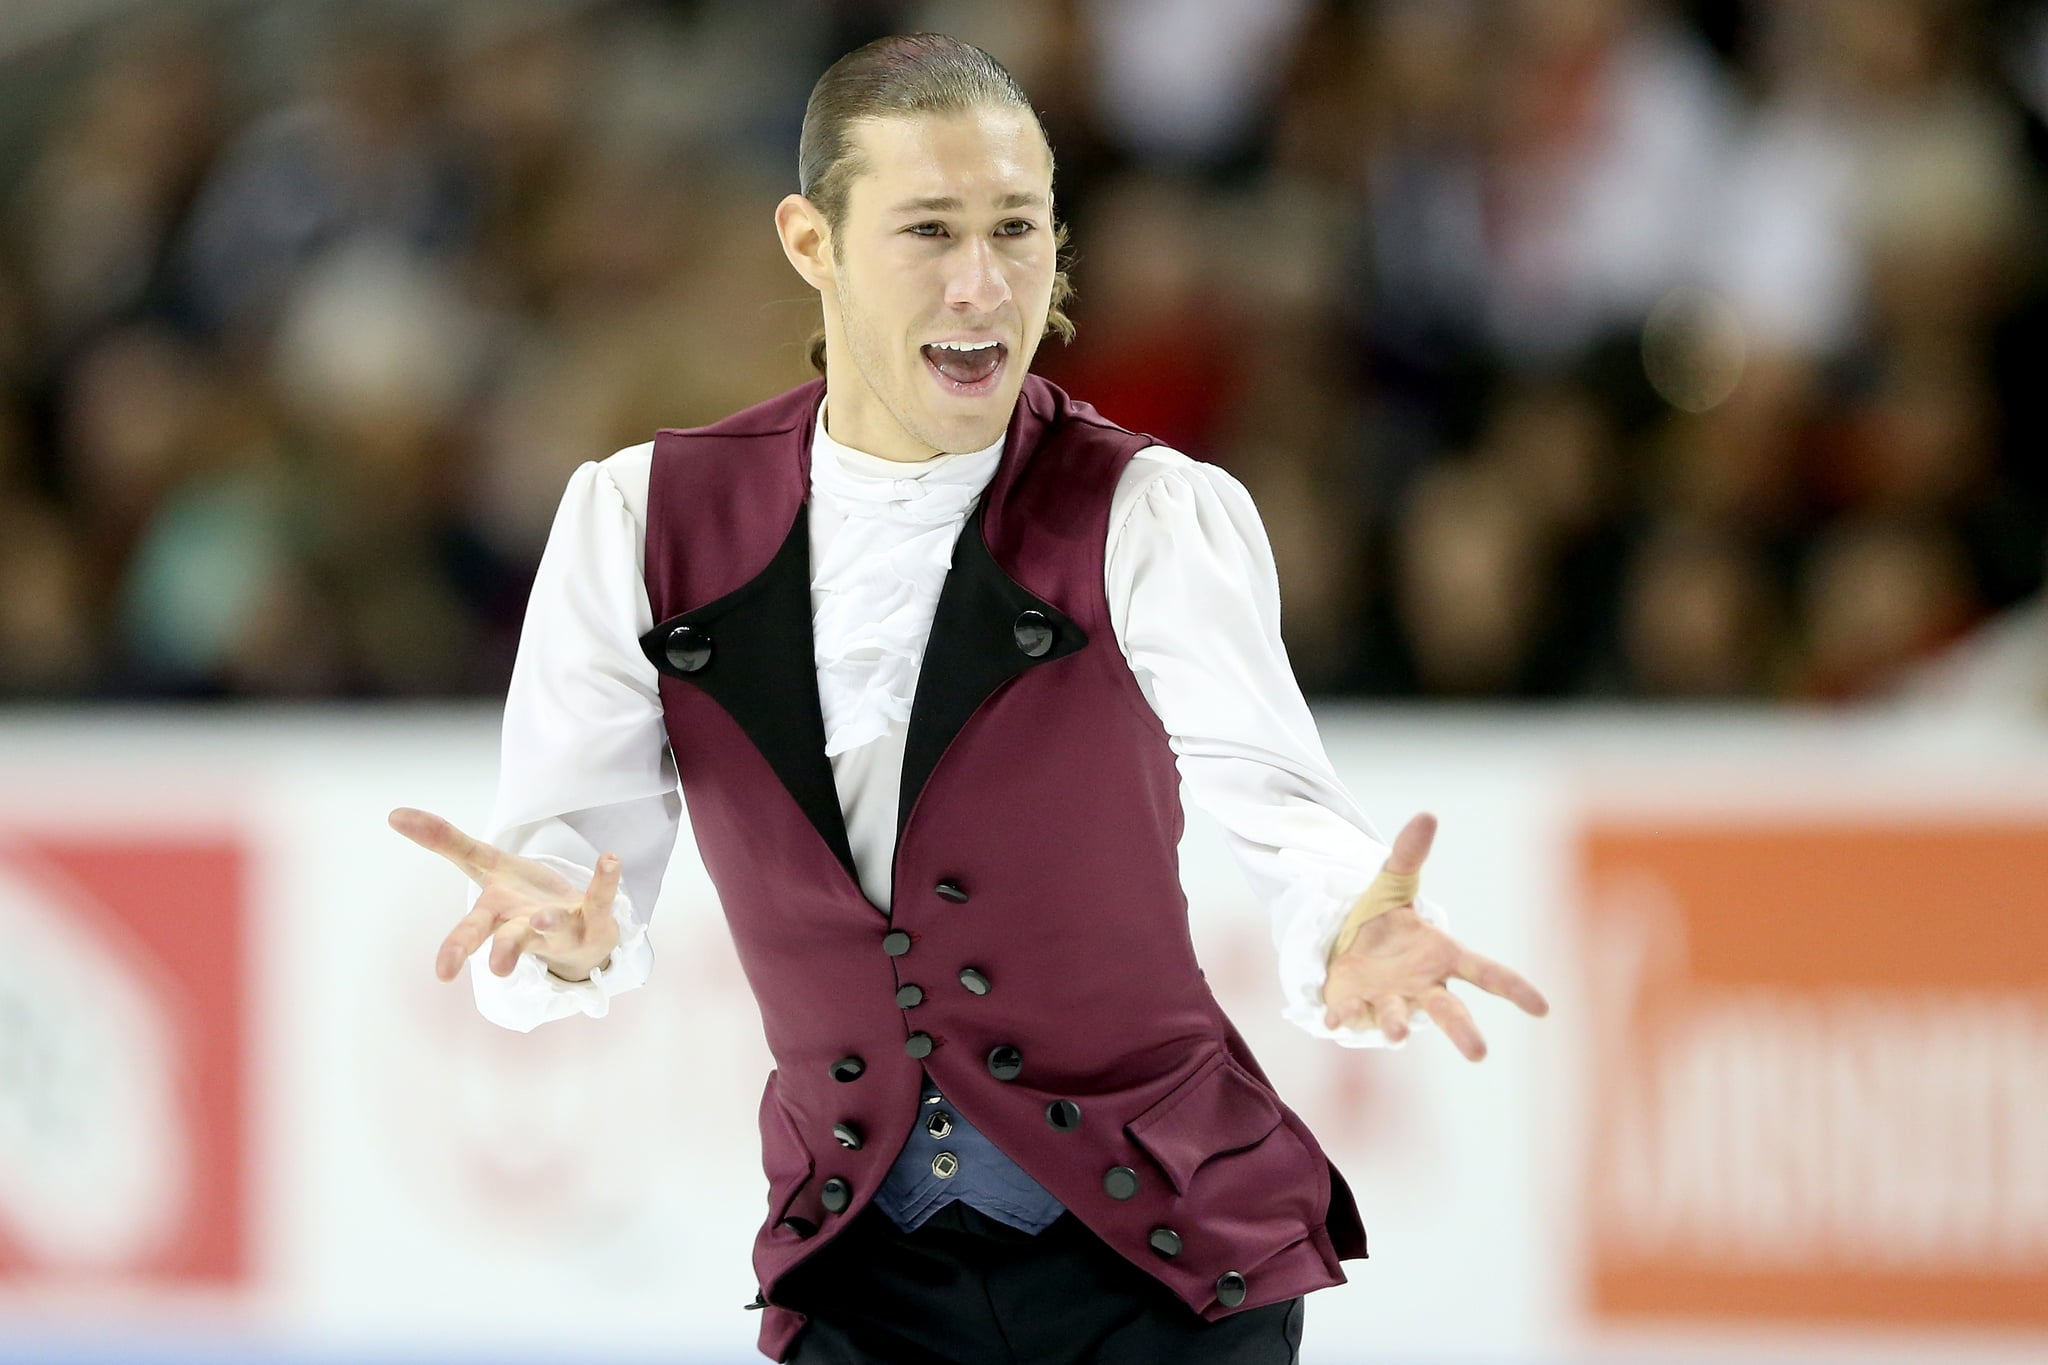 Olympic Figure Skater Adam Rippon Reveals Struggle With Body Image and Extreme Dieting